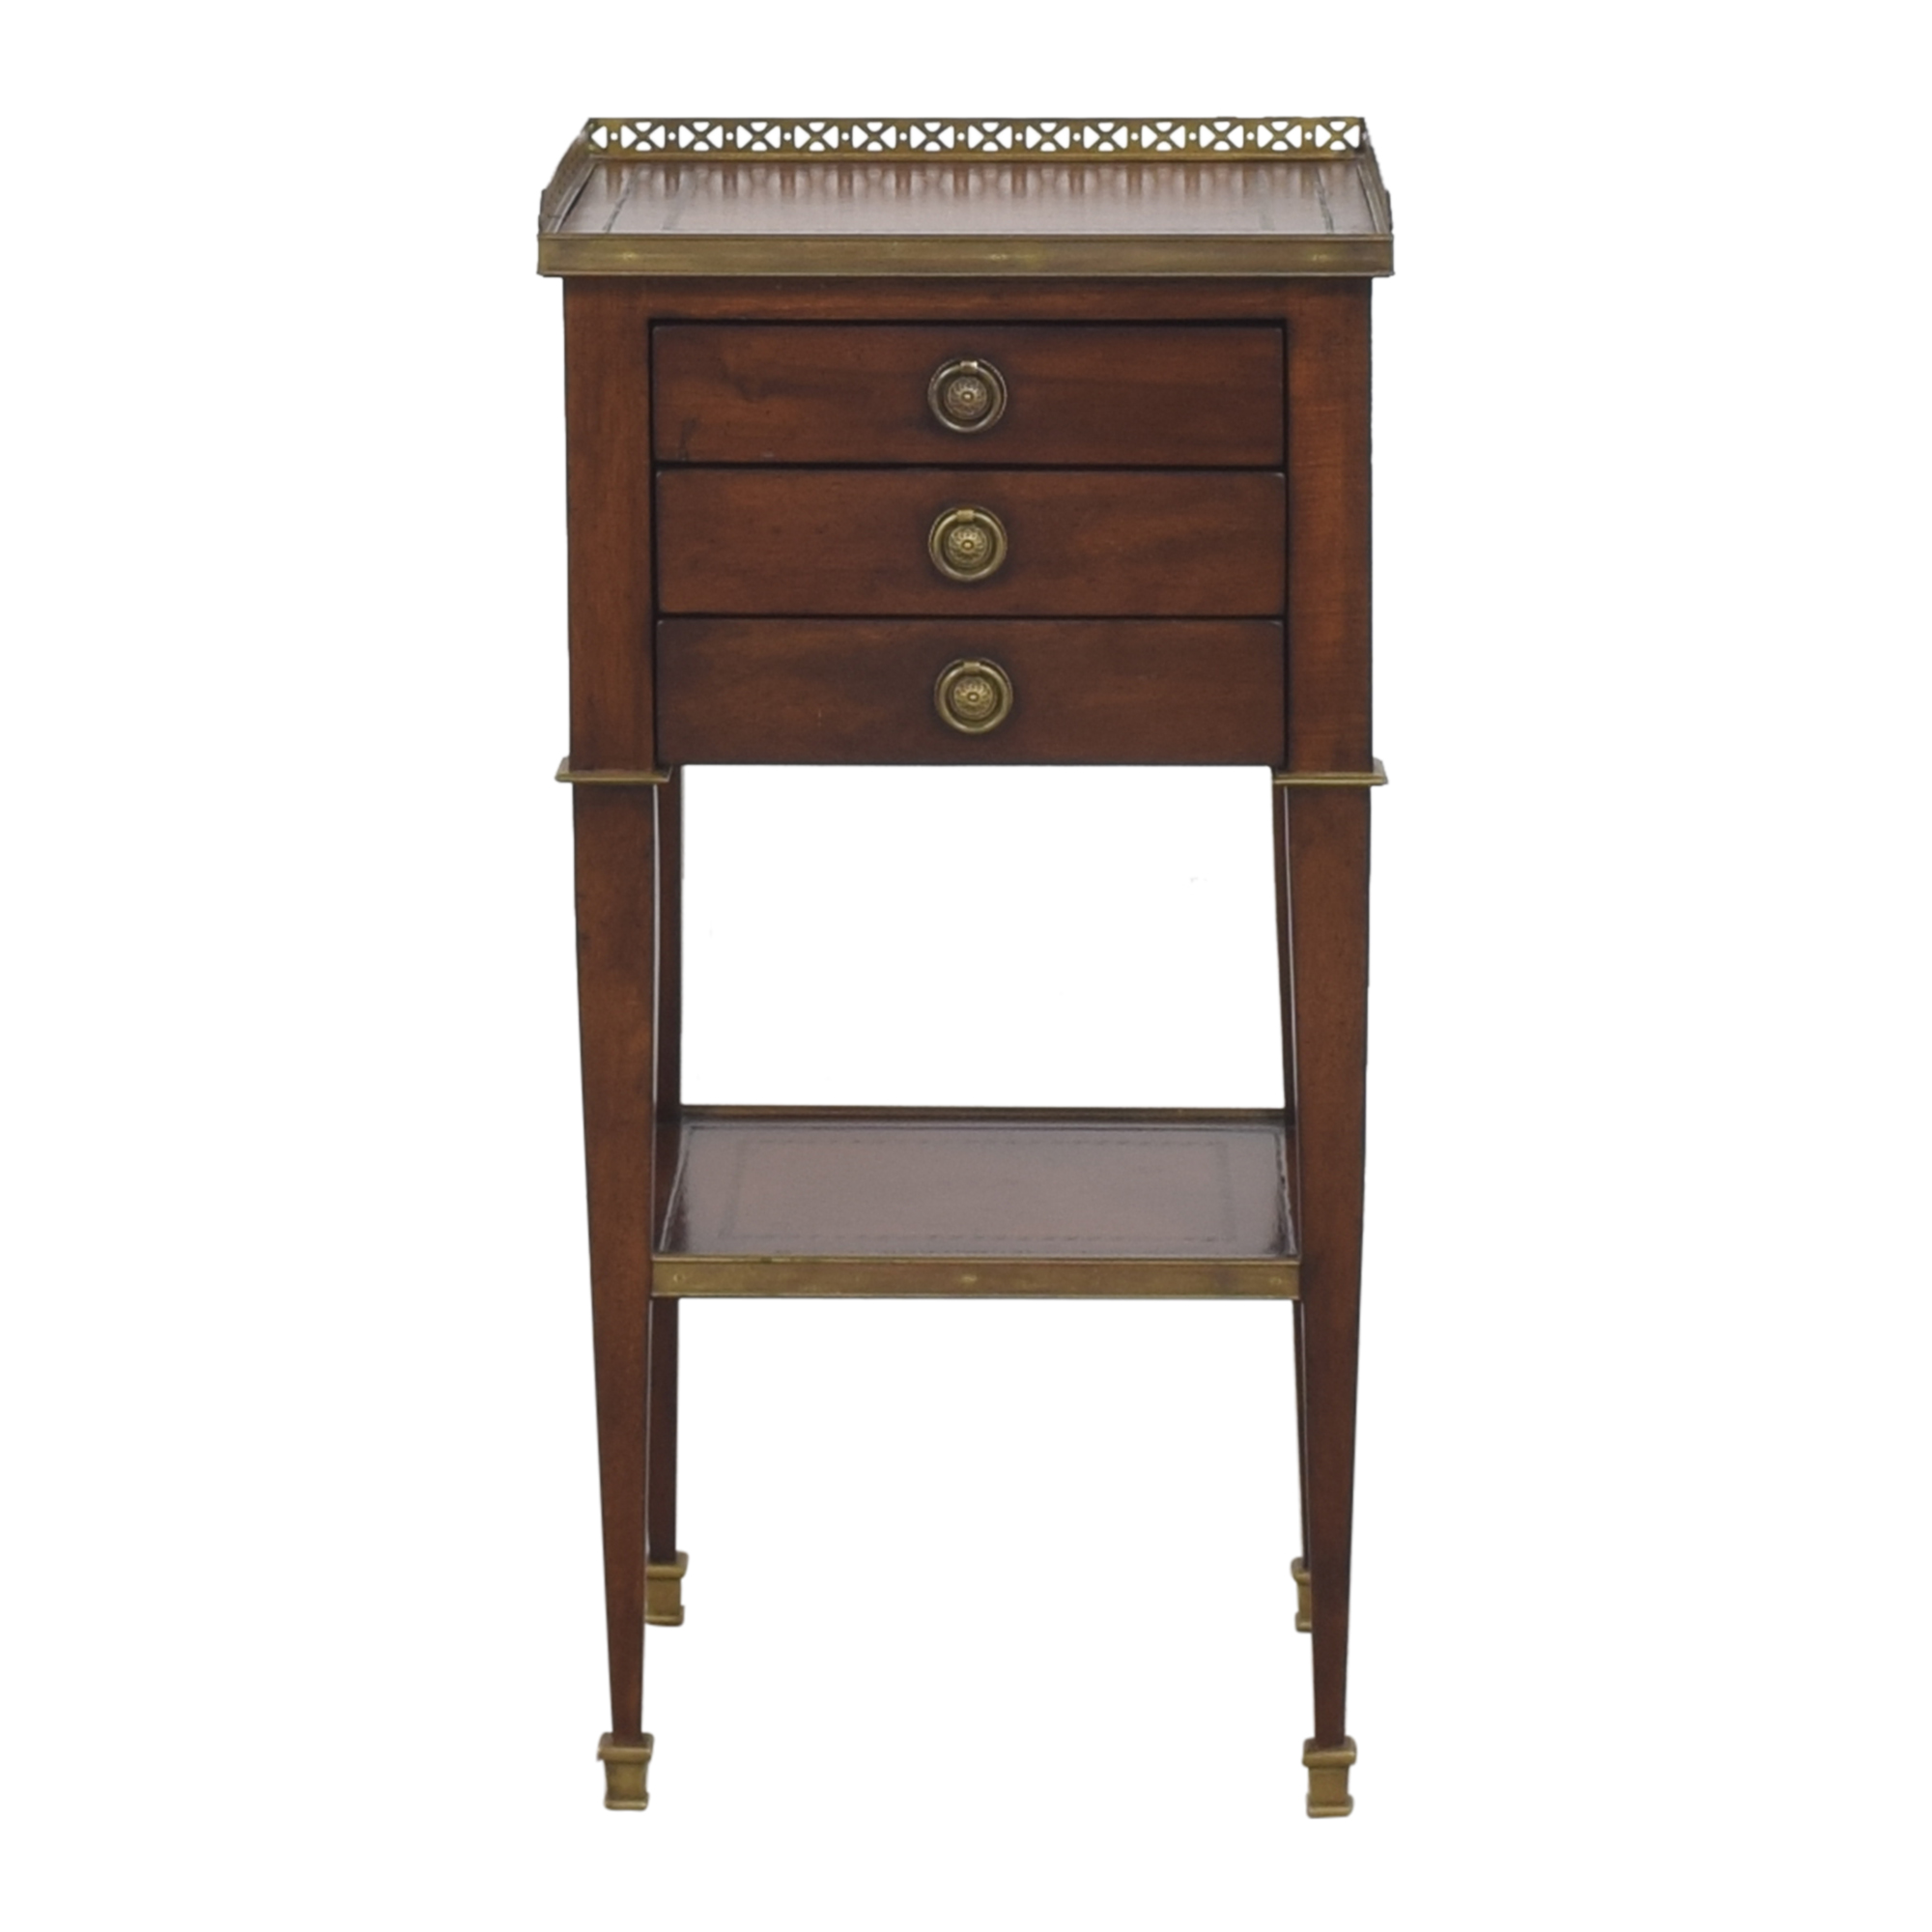 John-Richard John-Richard European Crossroads End Table on sale